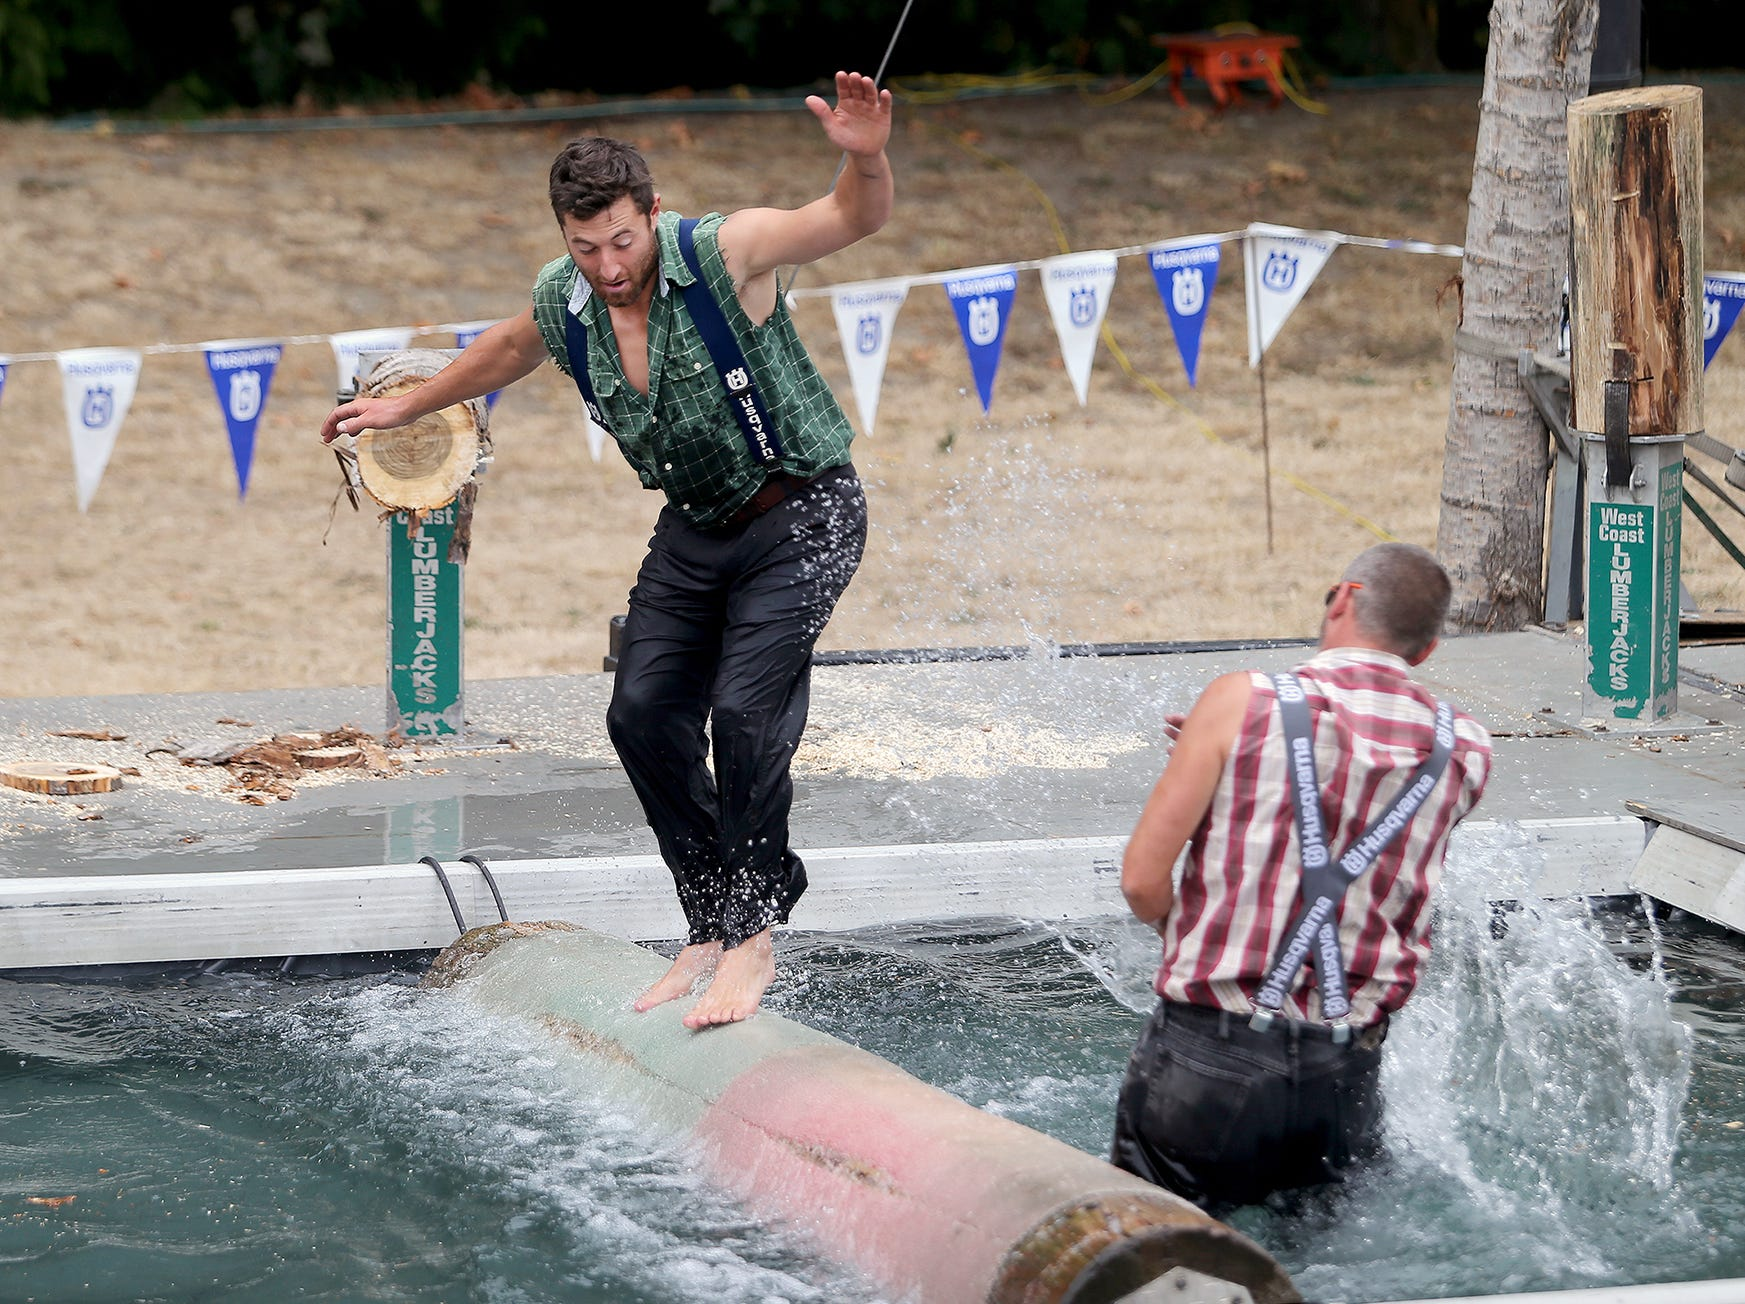 Scott Thompson dunks Darren Dean in the log roll in the West Coast Lumberjack Show at the Kitsap County Fair & Stampede on Friday, August 24, 2018 at the Kitsap County Fairgrounds.